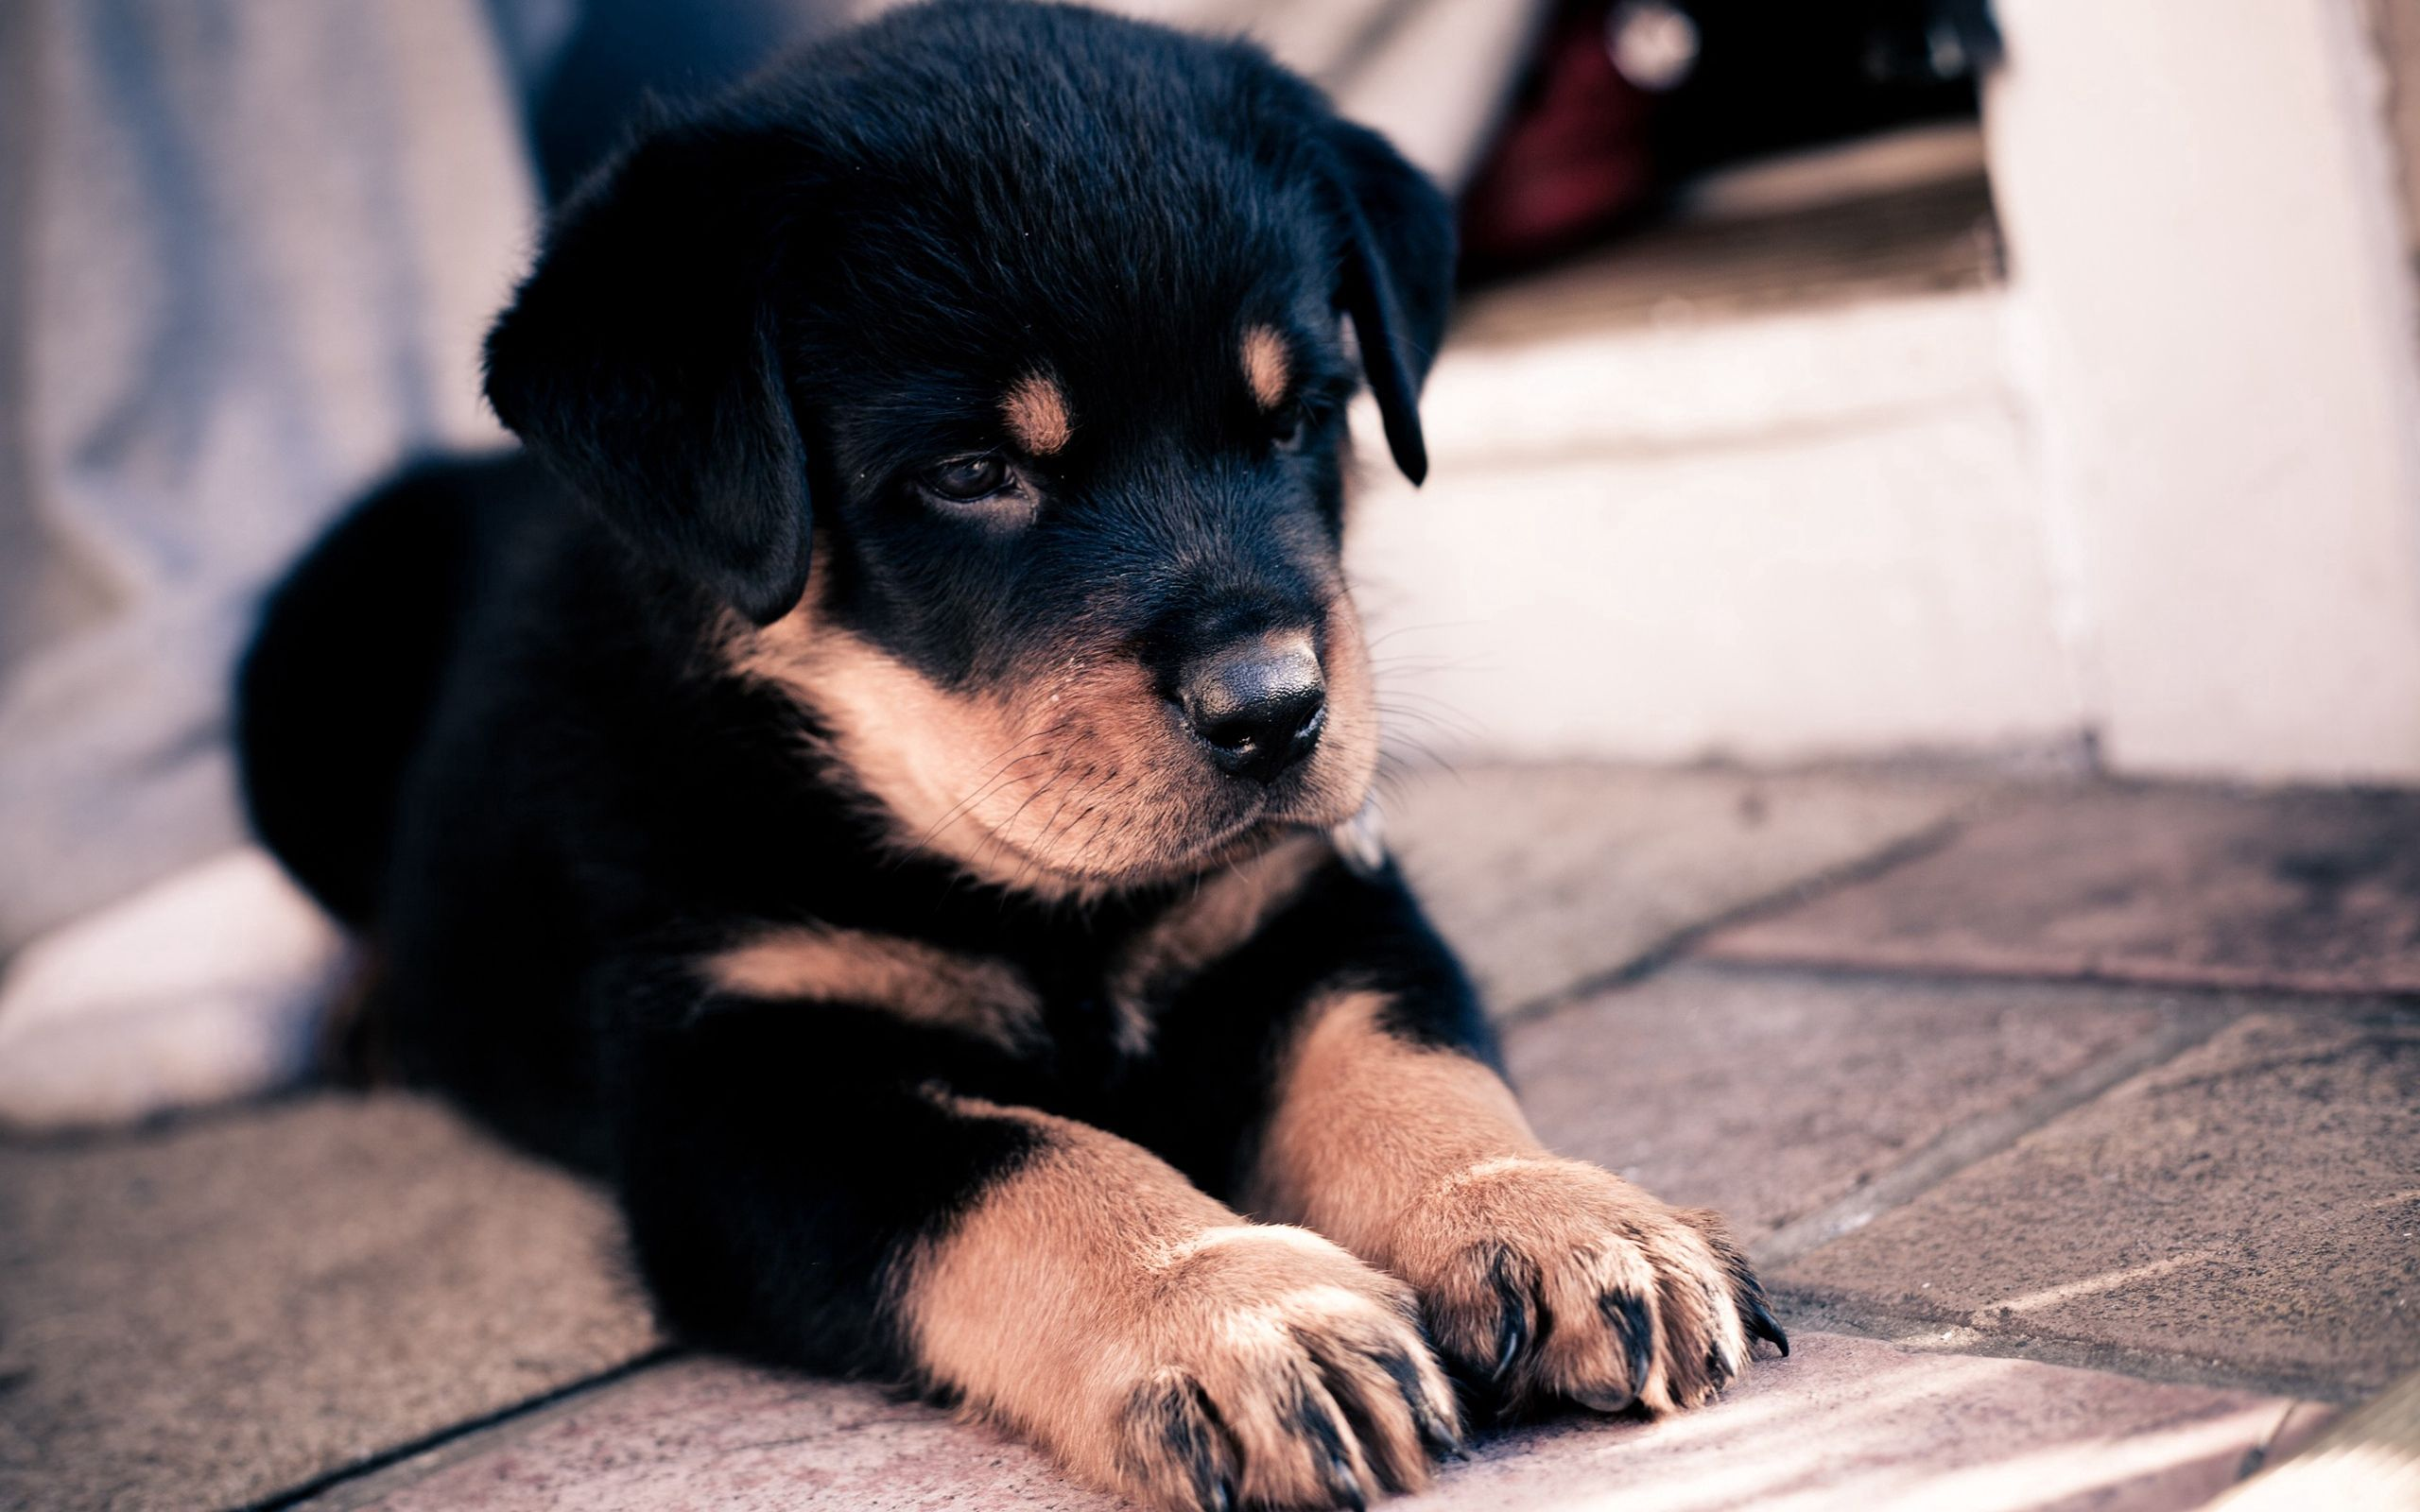 97556 download wallpaper Animals, Rottweiler, Puppy, Muzzle screensavers and pictures for free